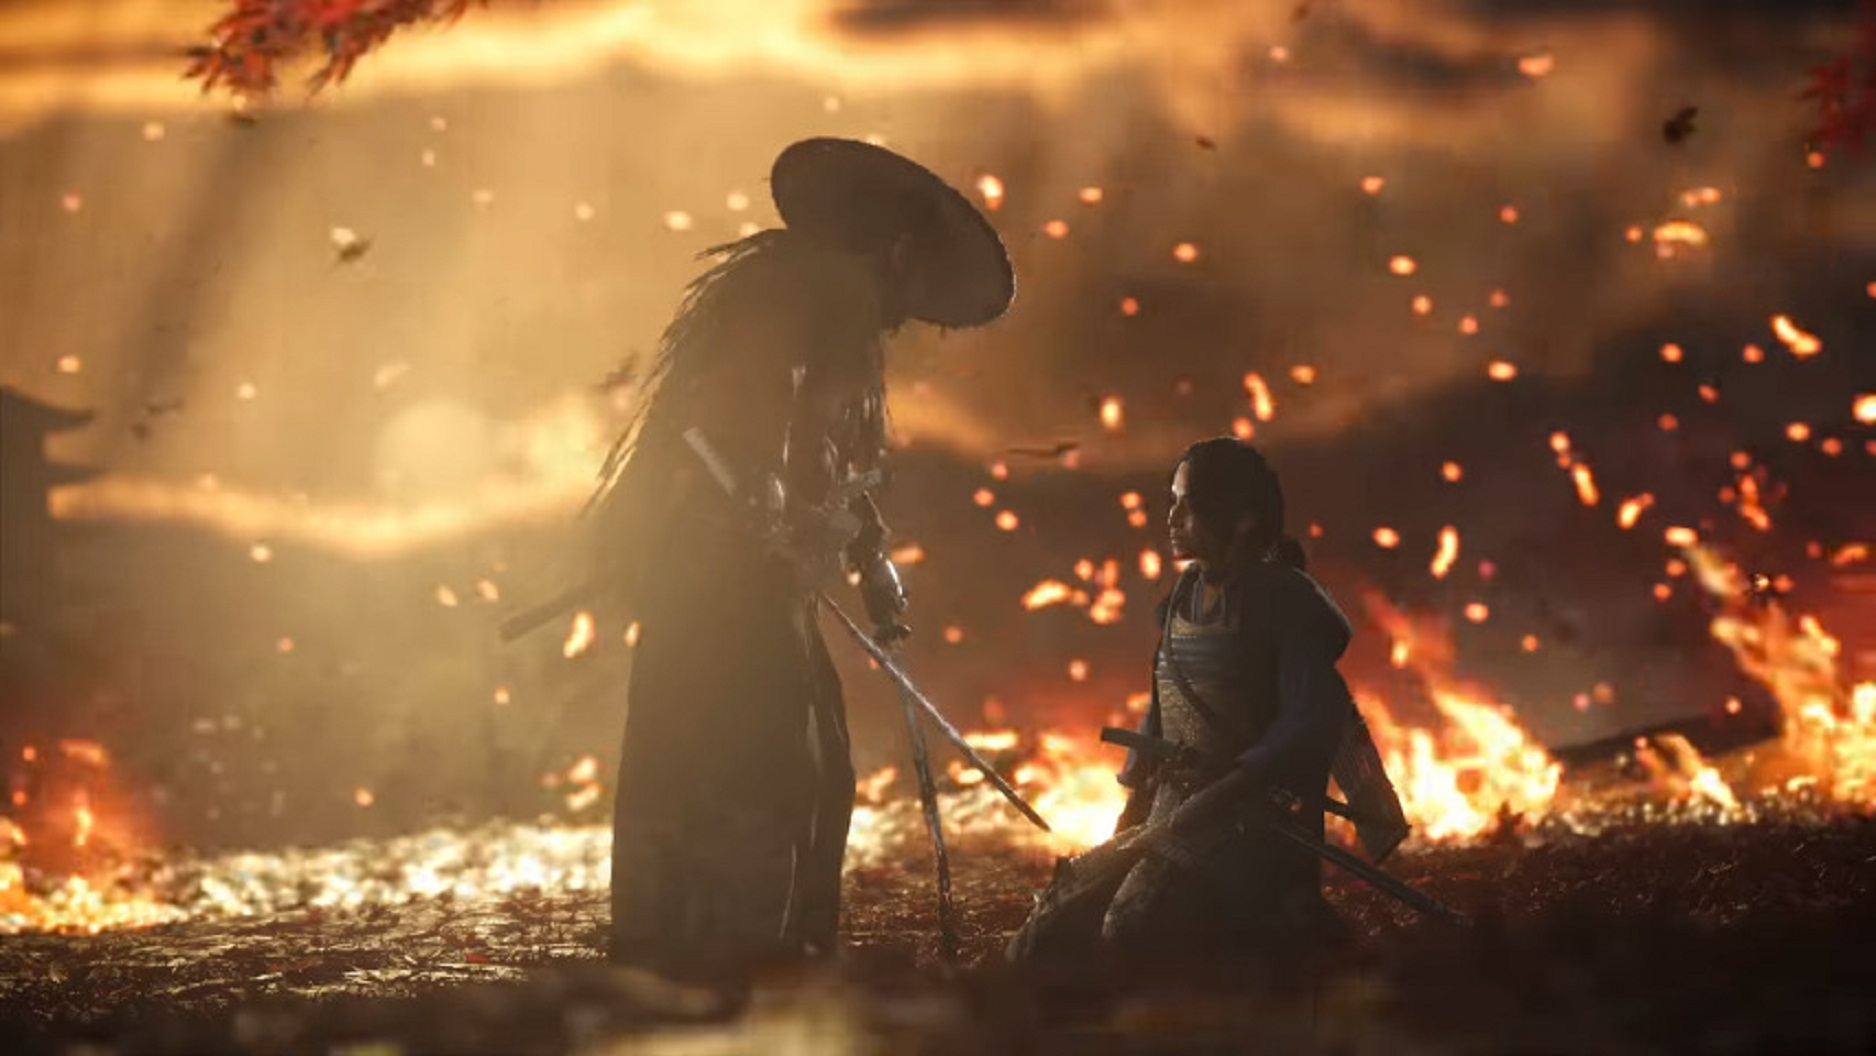 Ghost of Tsushima Reportedly Won't Have Any Waypoints To Point Things Out For Players